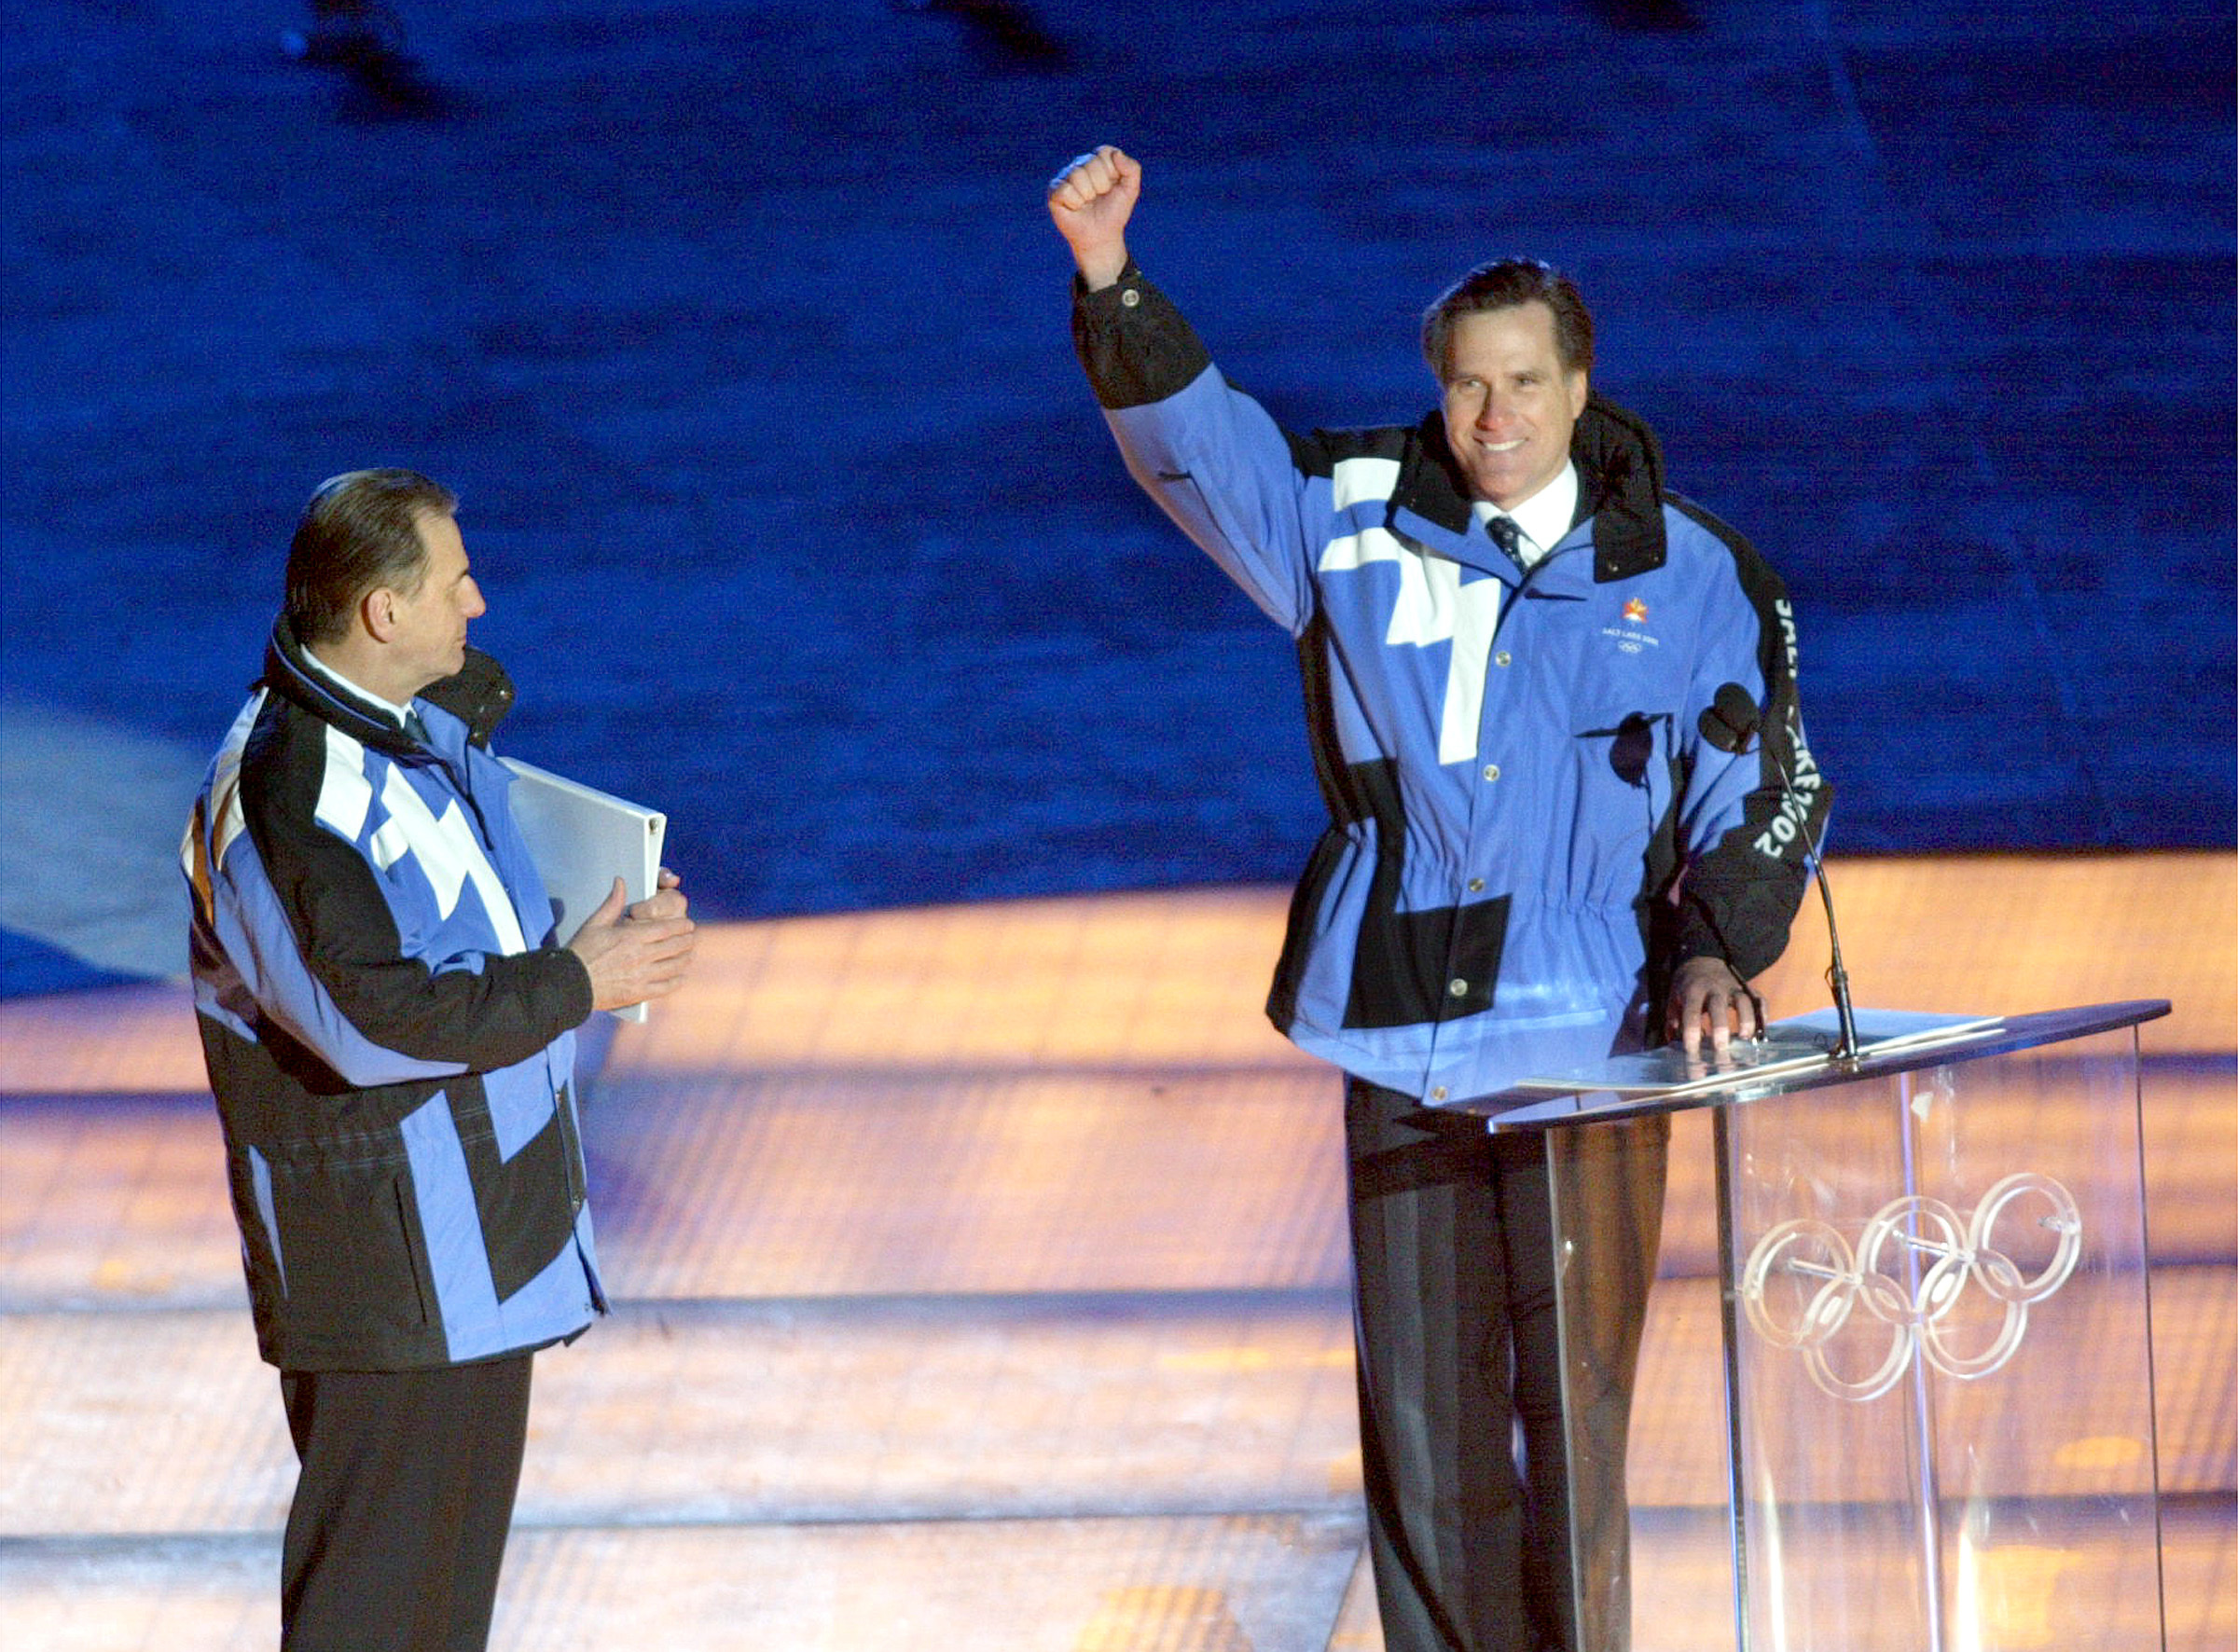 Mitt Romney acknowledges the crowd at the Opening Ceremony of the Salt Lake 2002 Winter Olympic Games at Rice-Eccles Stadium Friday, Feb. 8, 2002.